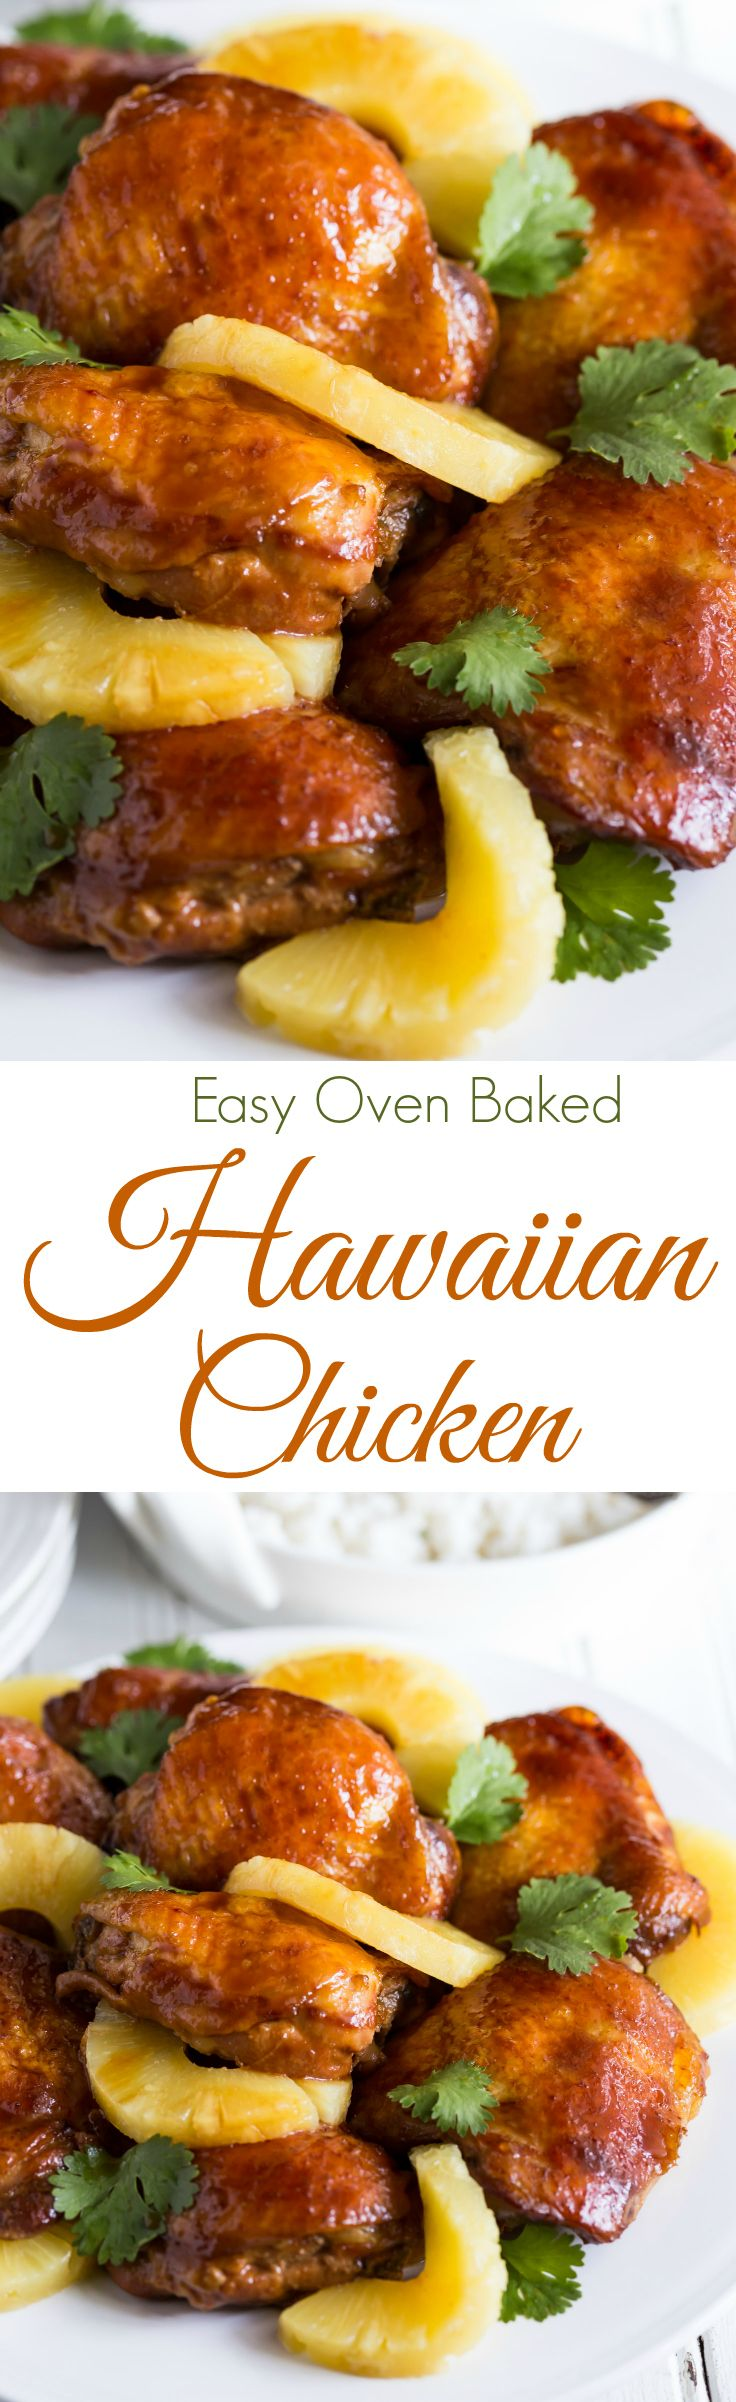 A simply gorgeous, sticky, tasty, Baked Hawaiian Style Chicken Thighs recipes that will leave you begging for more! It's gluten free and dairy free